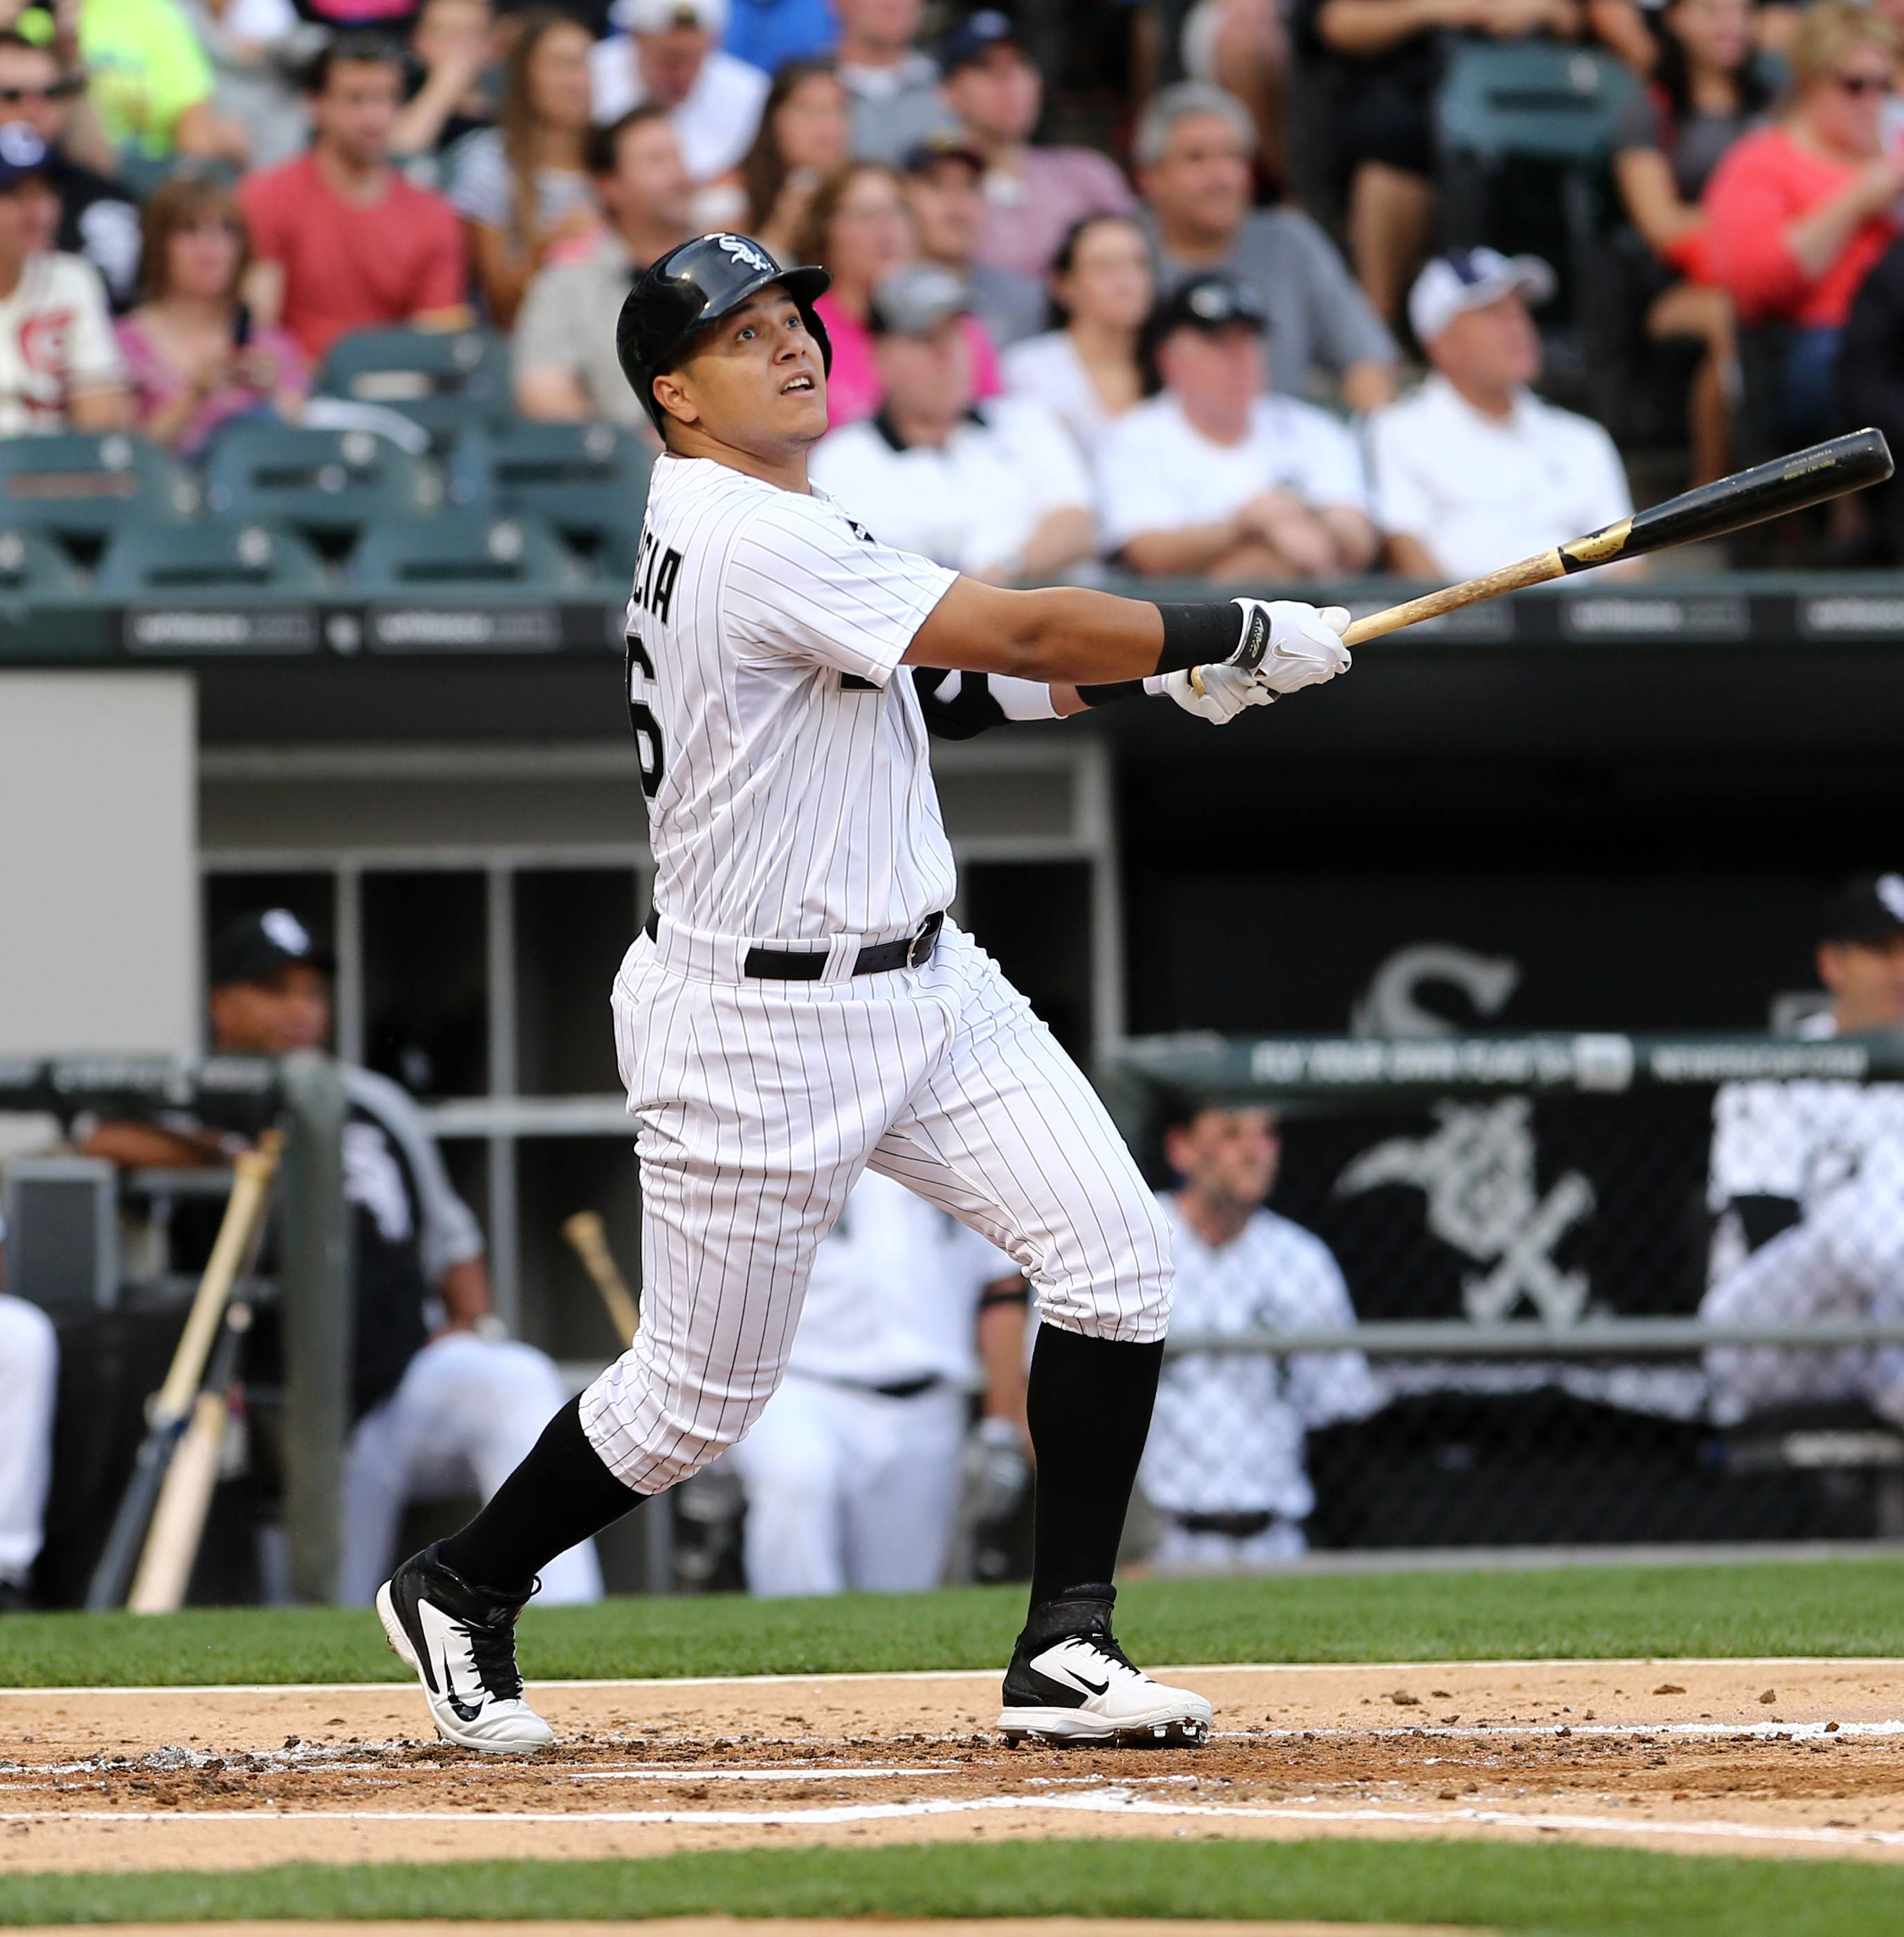 Chicago White Sox's Avisail Garcia watches his double against the Toronto Blue Jays in the second inning of a baseball game in Chicago on Saturday, Aug. 16, 2014.